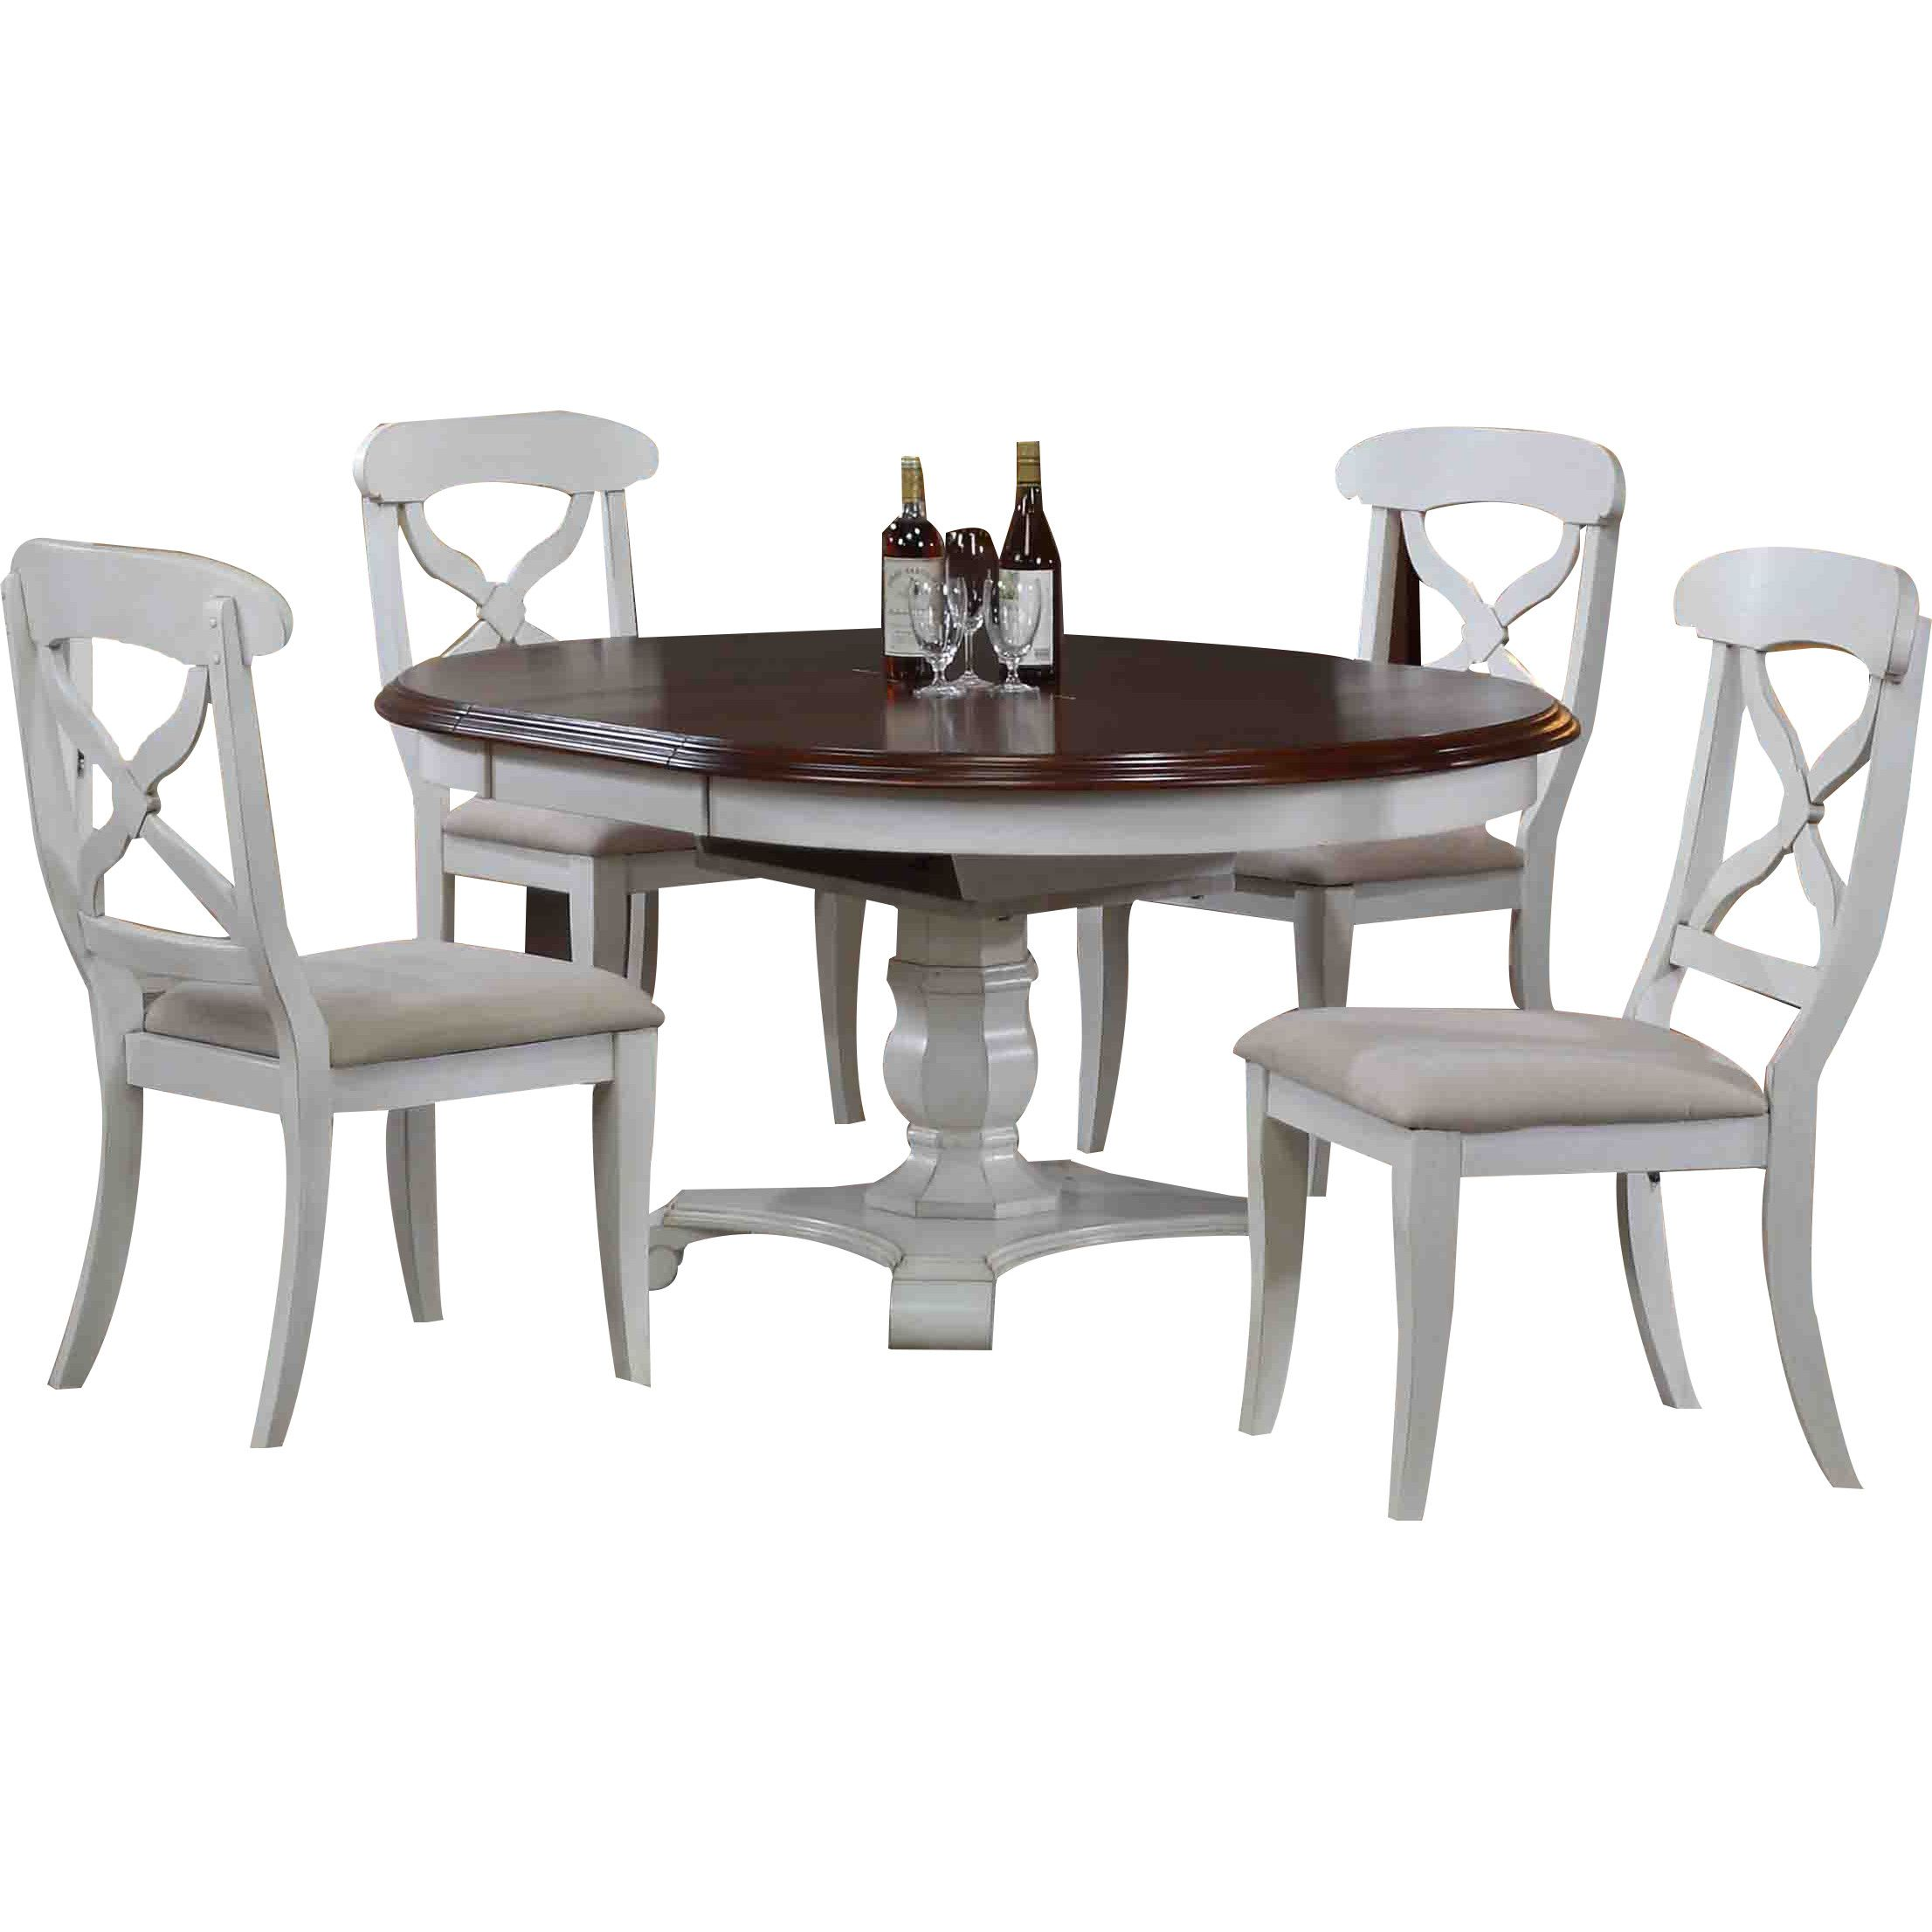 Dining sets Customer Image Zoomed Customer